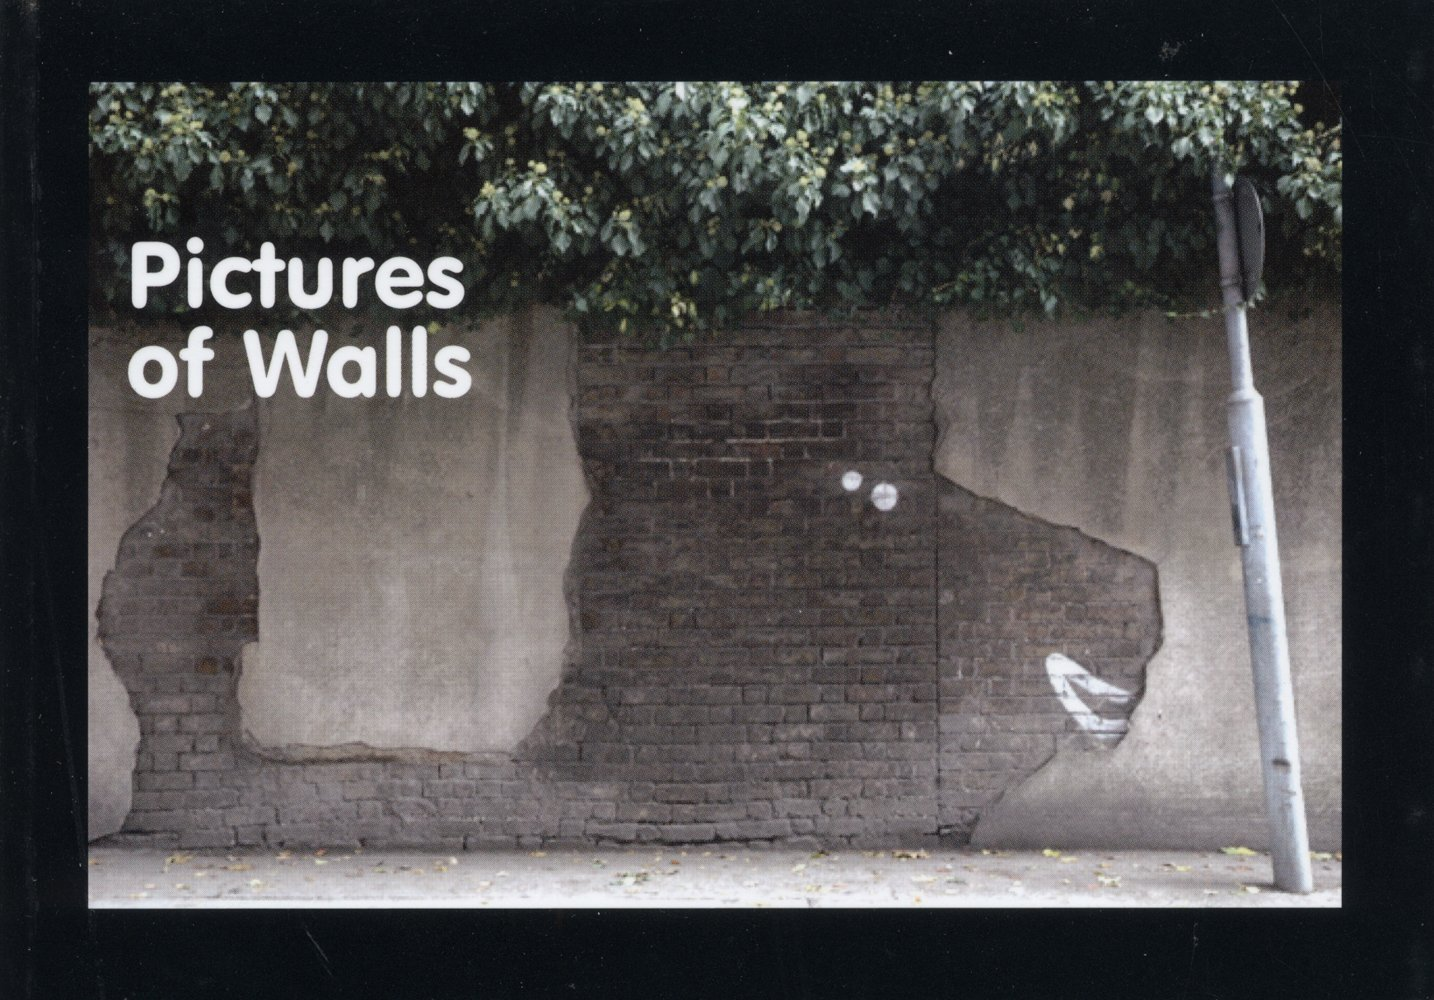 Pictures Walls Banksy product image